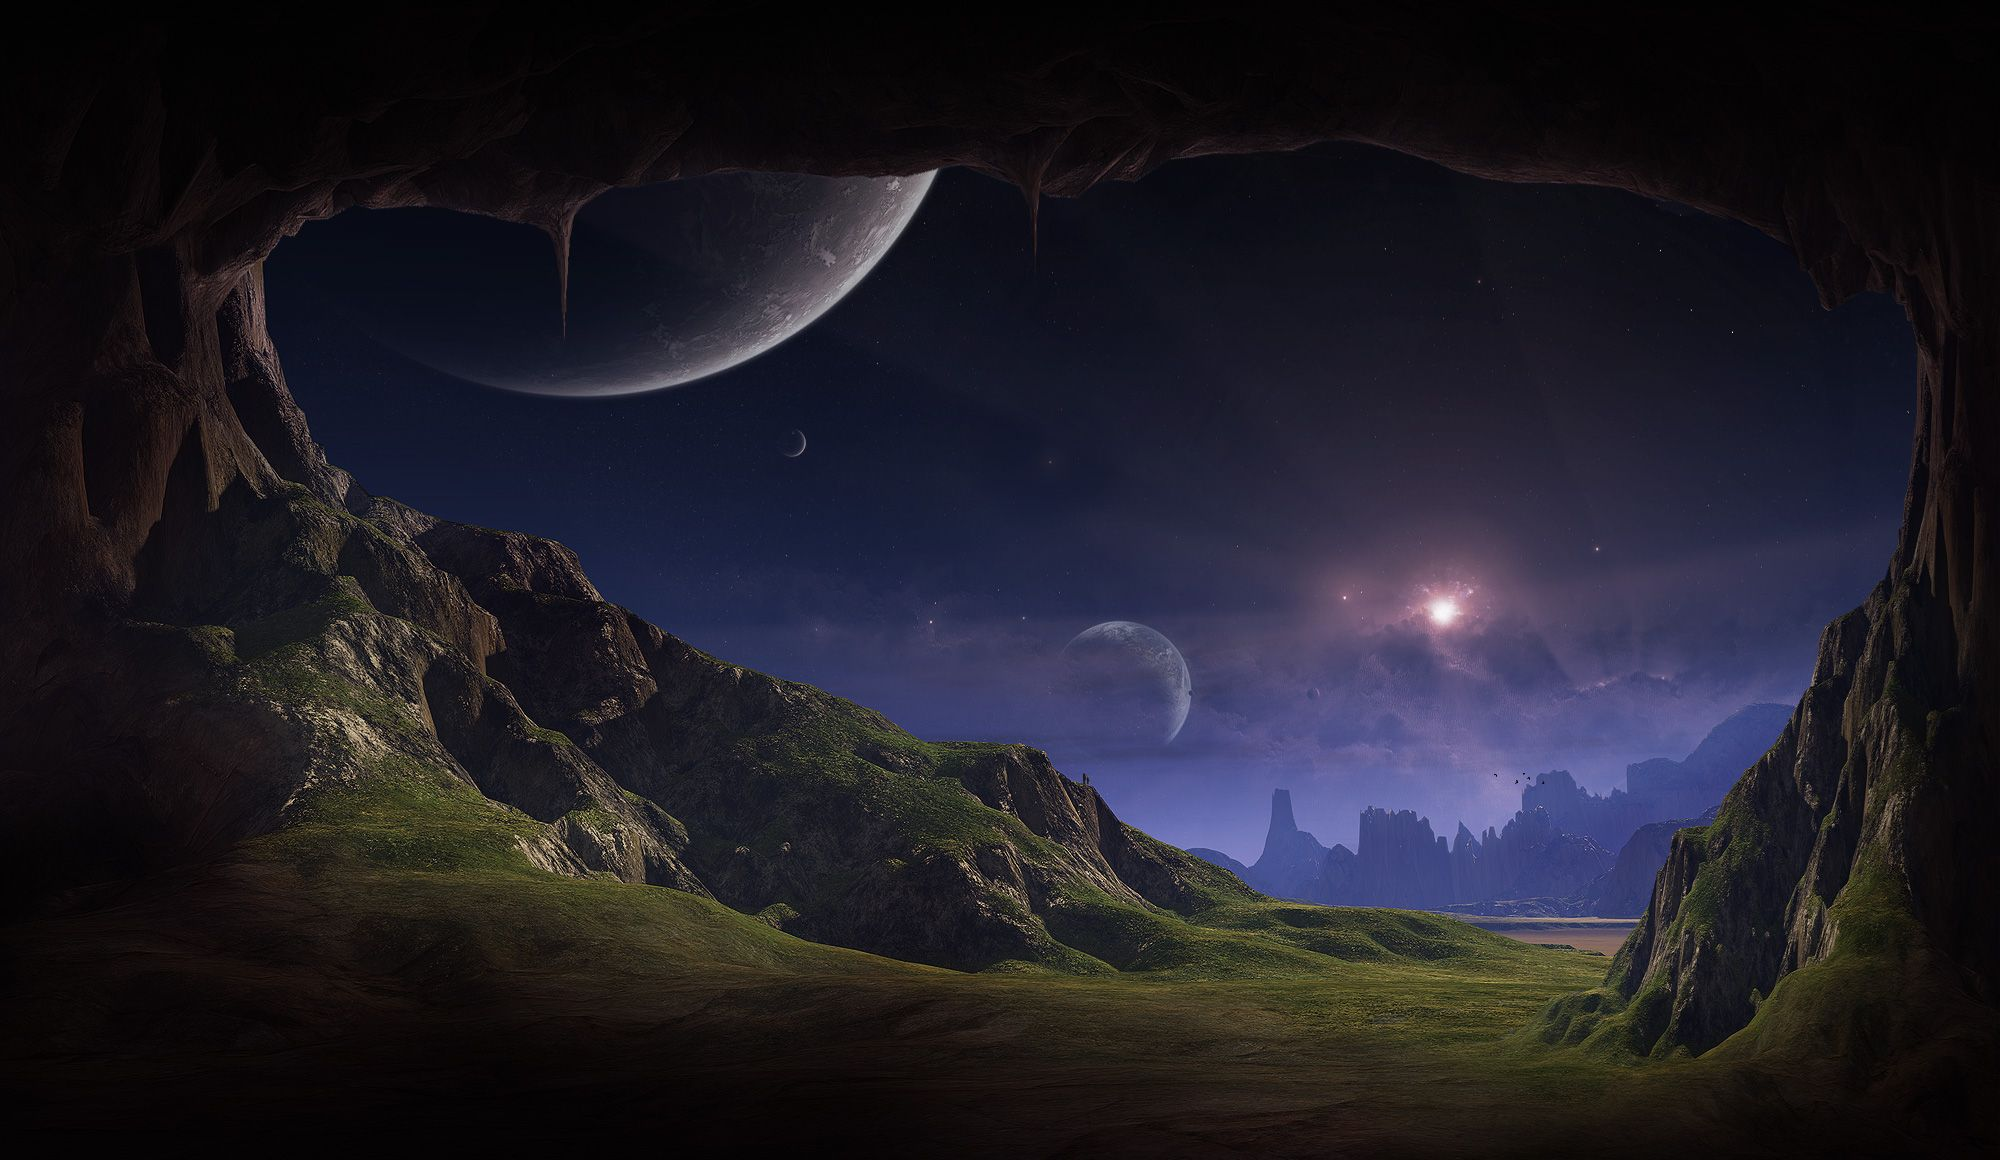 Alien Landscapes Planets | Enjoy This Wallpaper? We have ...